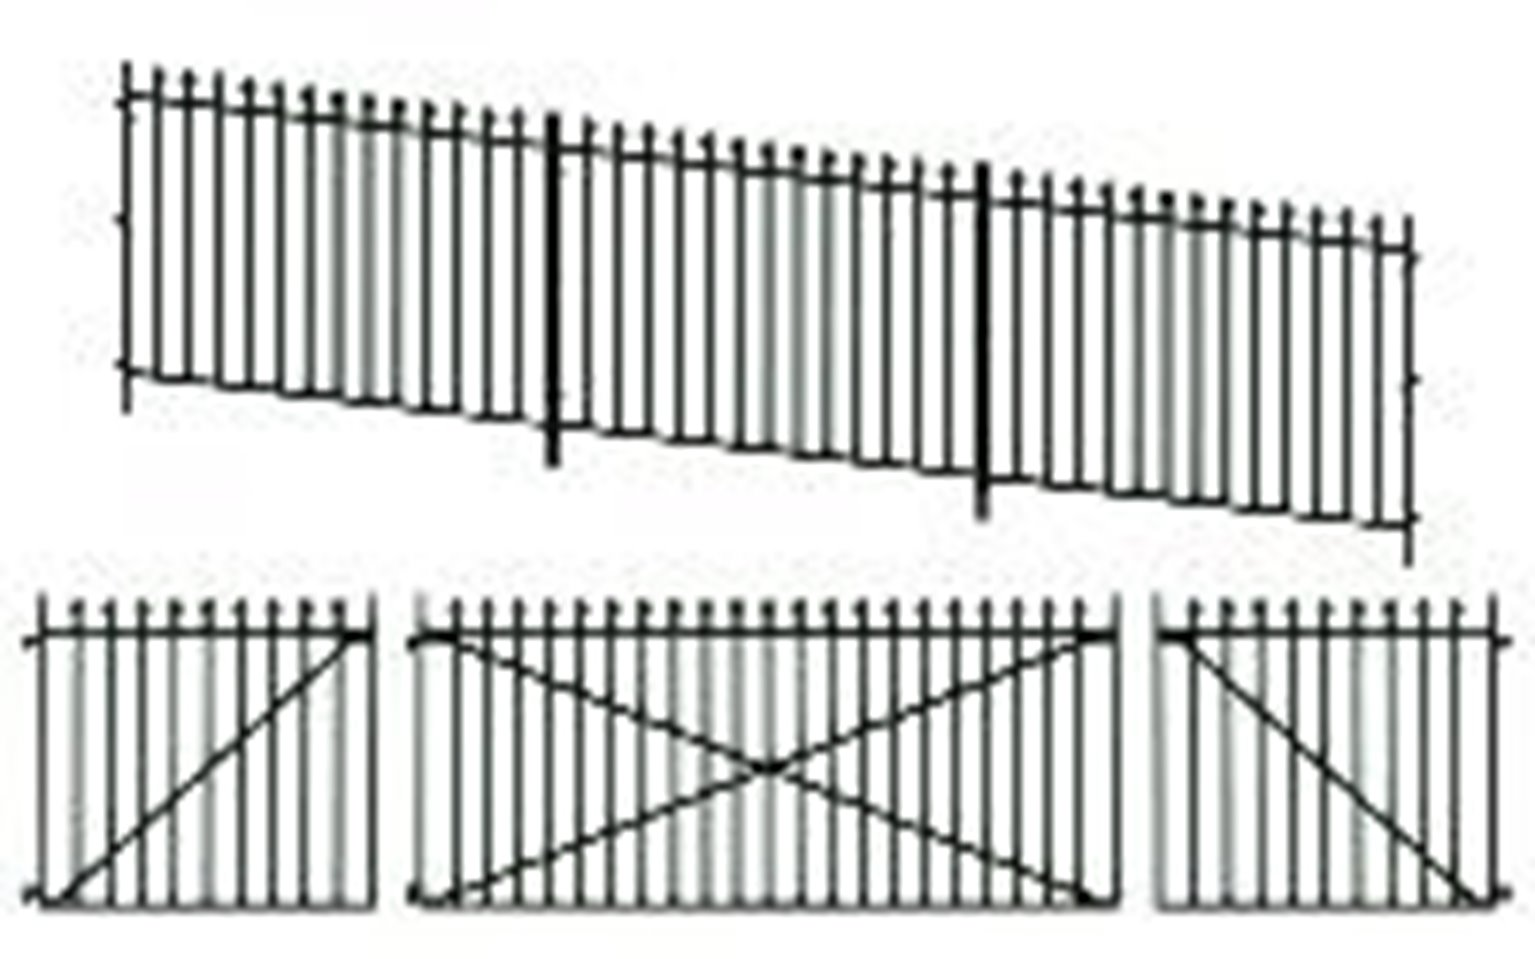 Peco LK-742 GWR Spear Fencing, Ramp panels, gates and posts